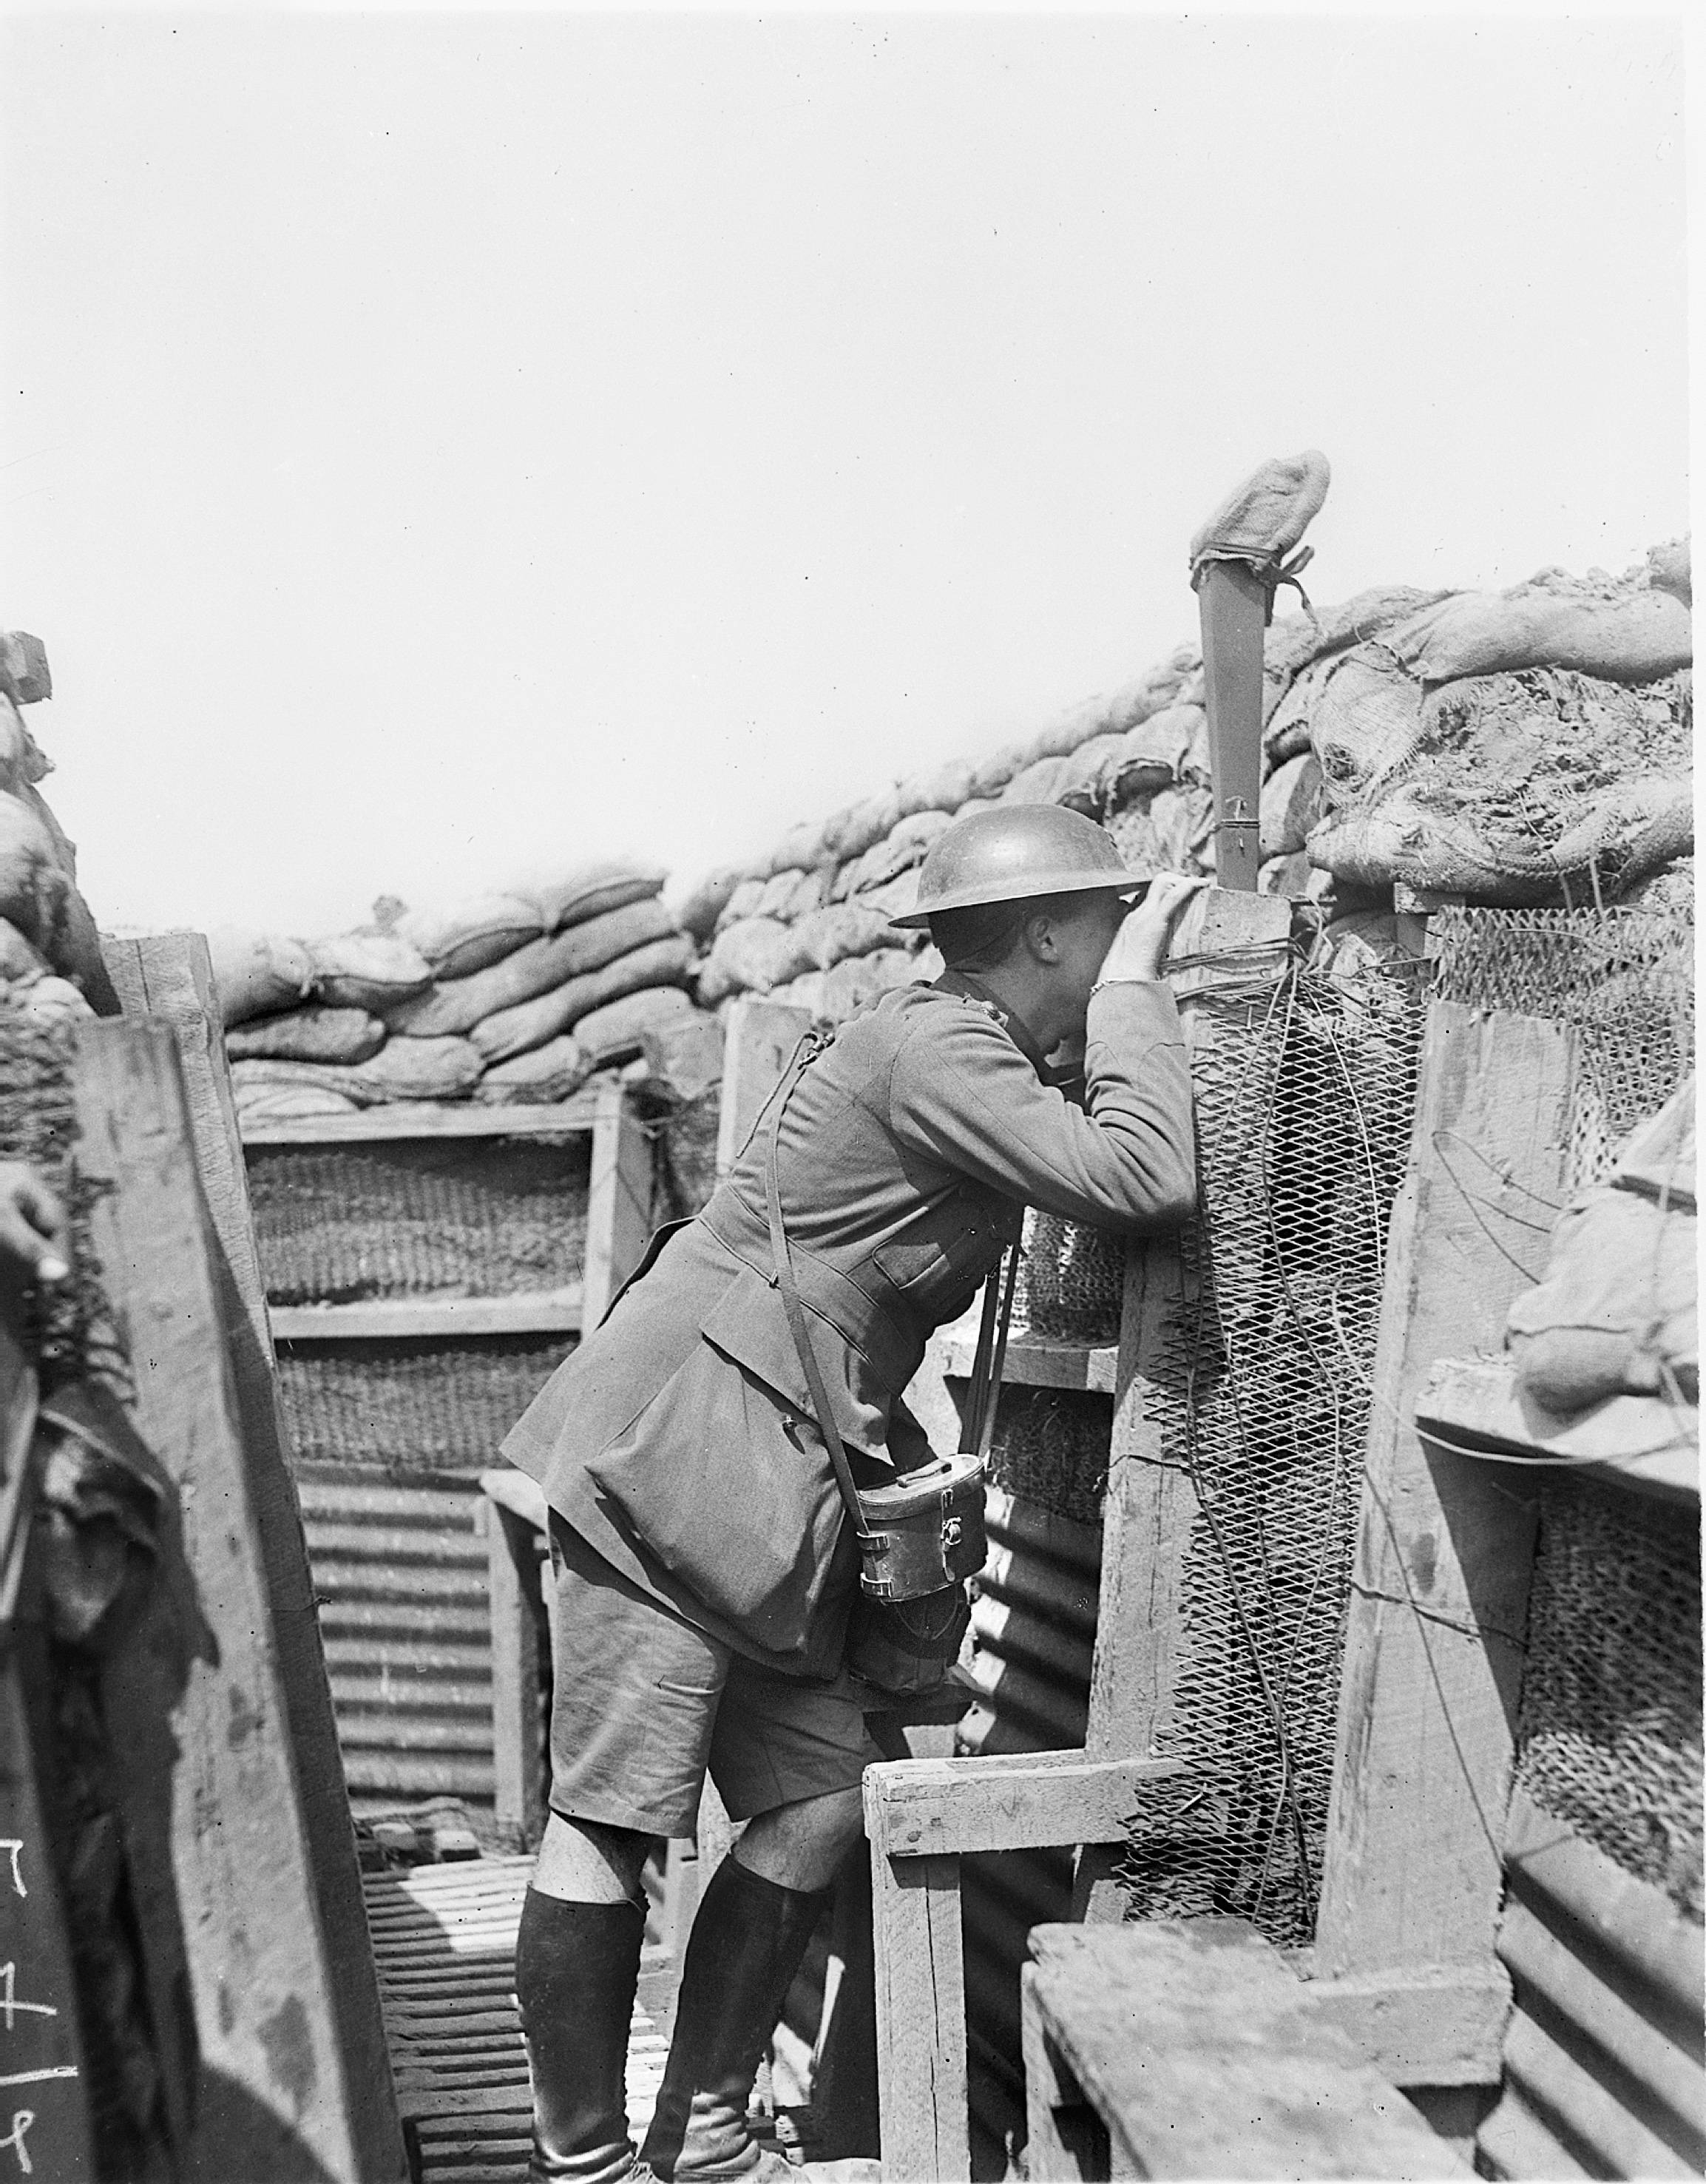 In this June 5, 1917 photo provided by the Australian War Memorial, an Australian officer, in a well constructed trench on Hill 63, looks through a periscope near Messines Ridge in Messines, Belgium. The photograph was taken twelve hours prior to the opening of the long prepared battle, which was eventually to win the position from the enemy.